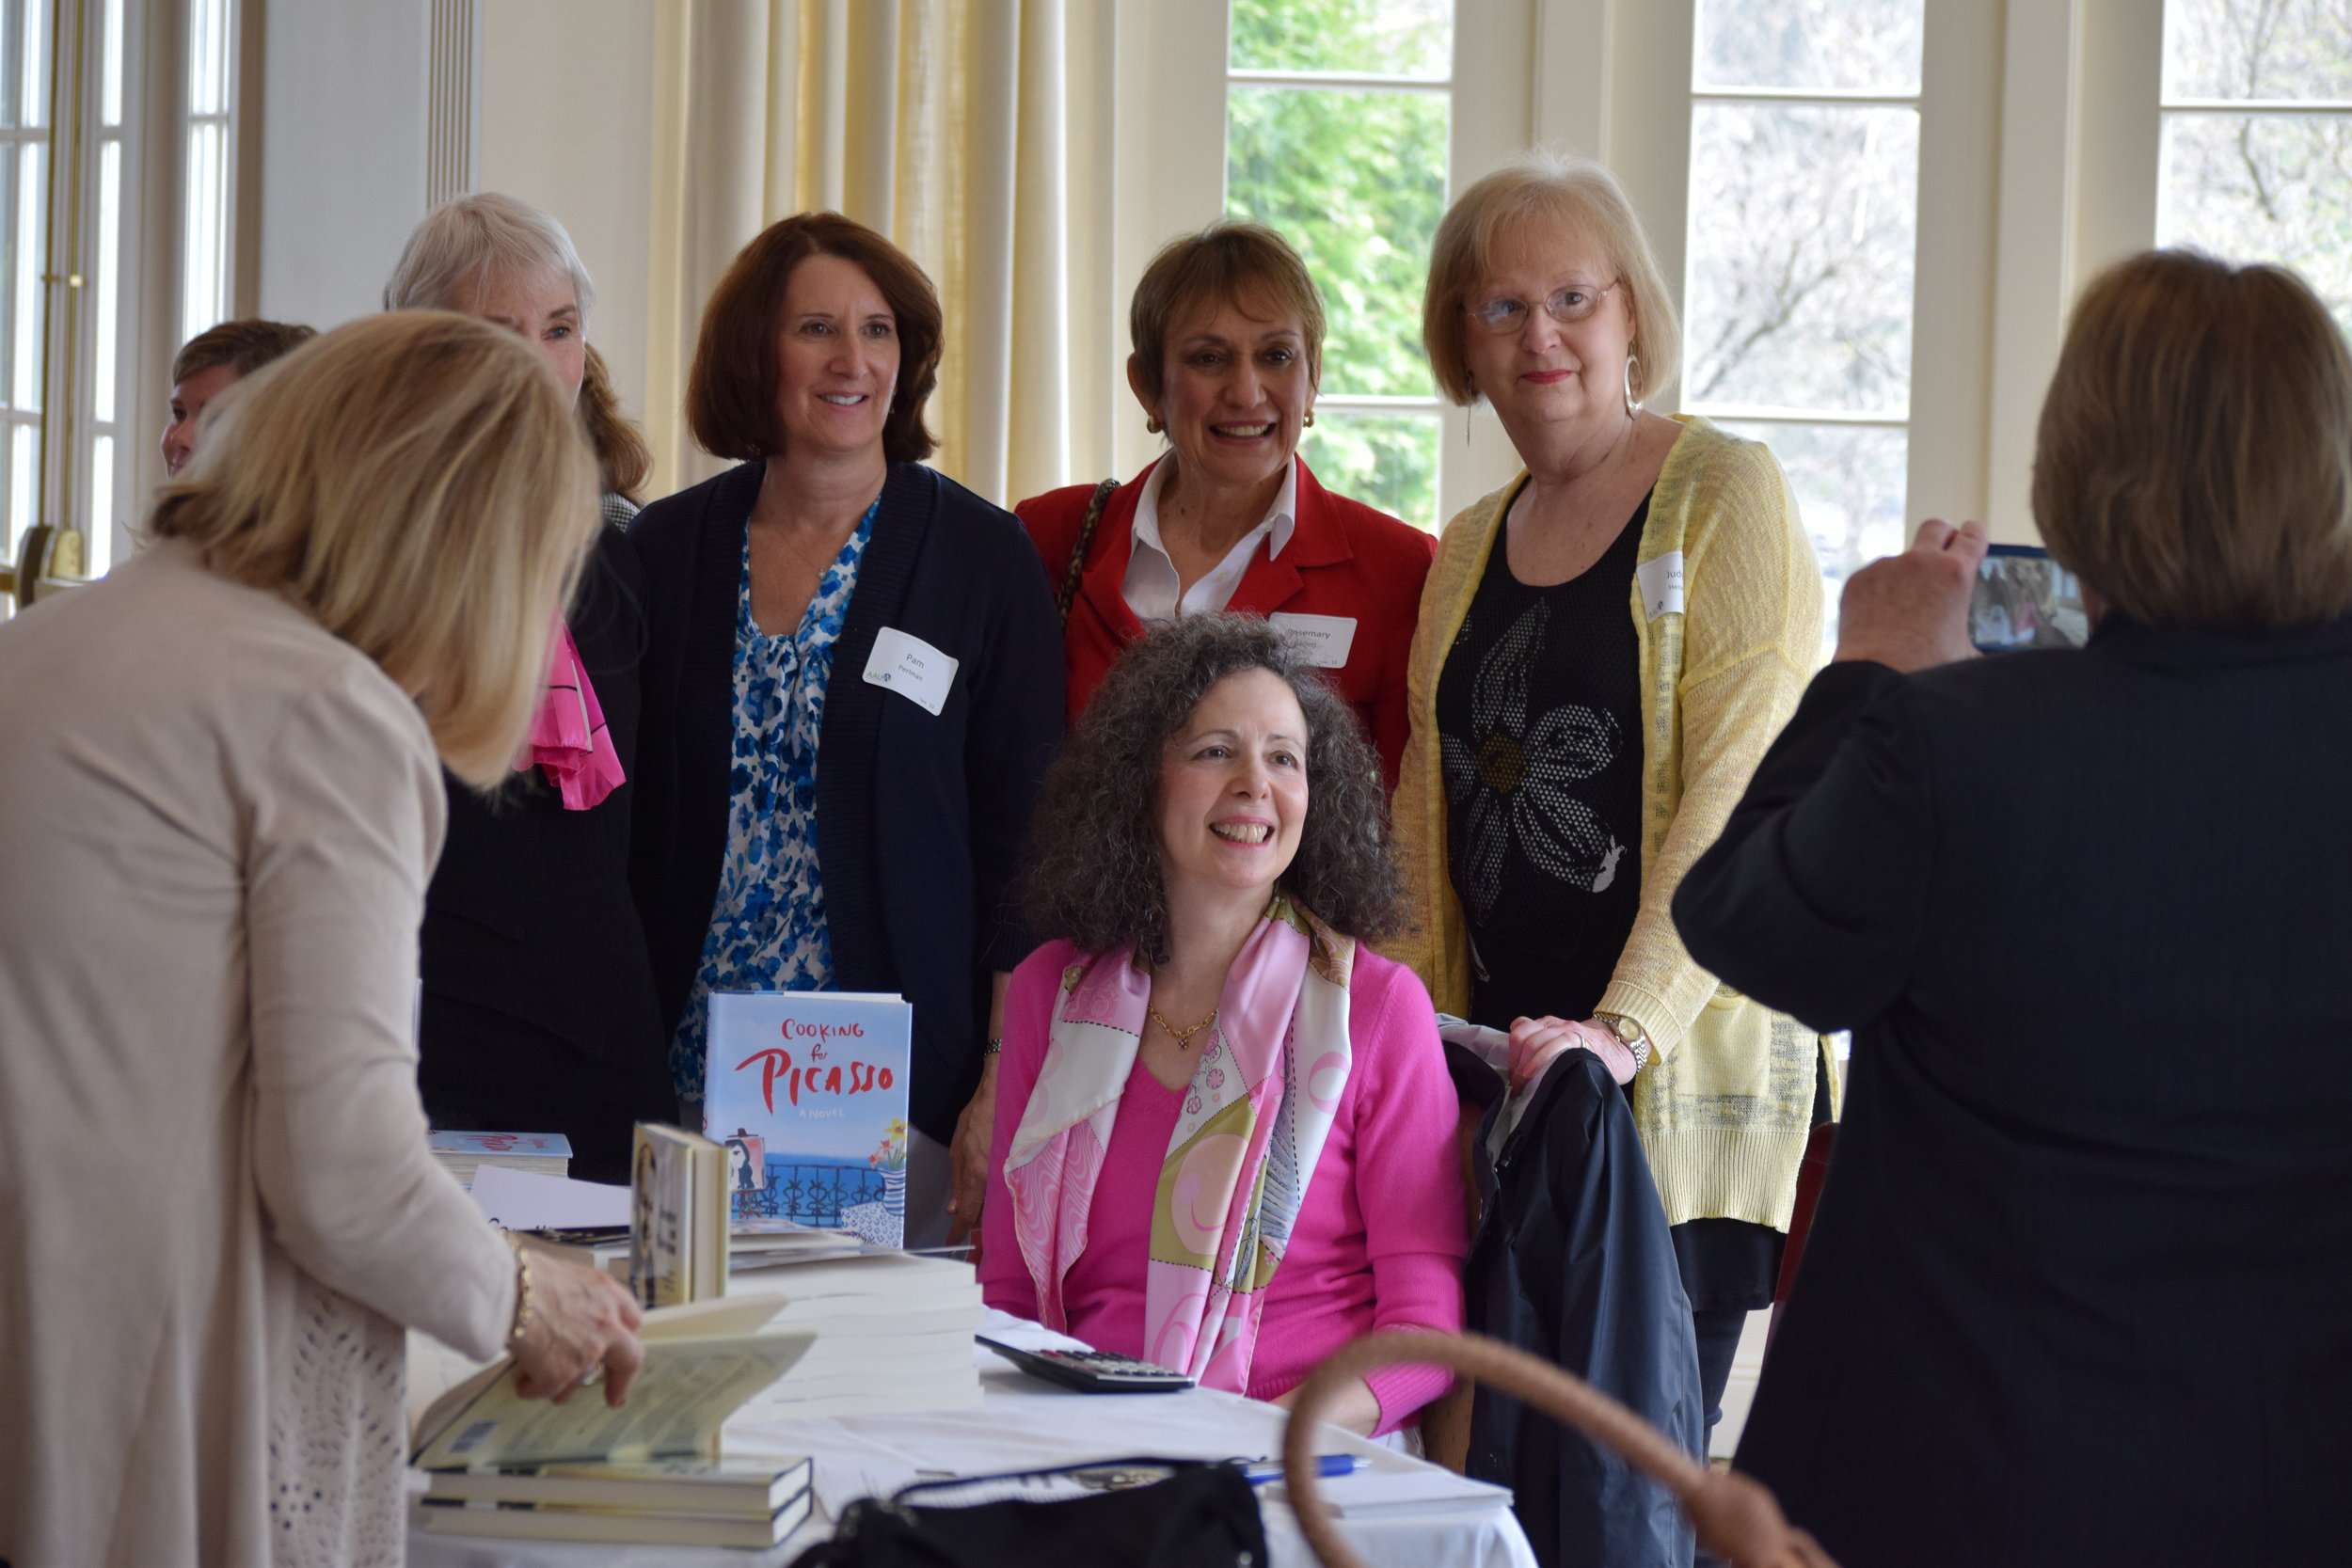 Camille Aubray with book club in Darien, CT at annual luncheon